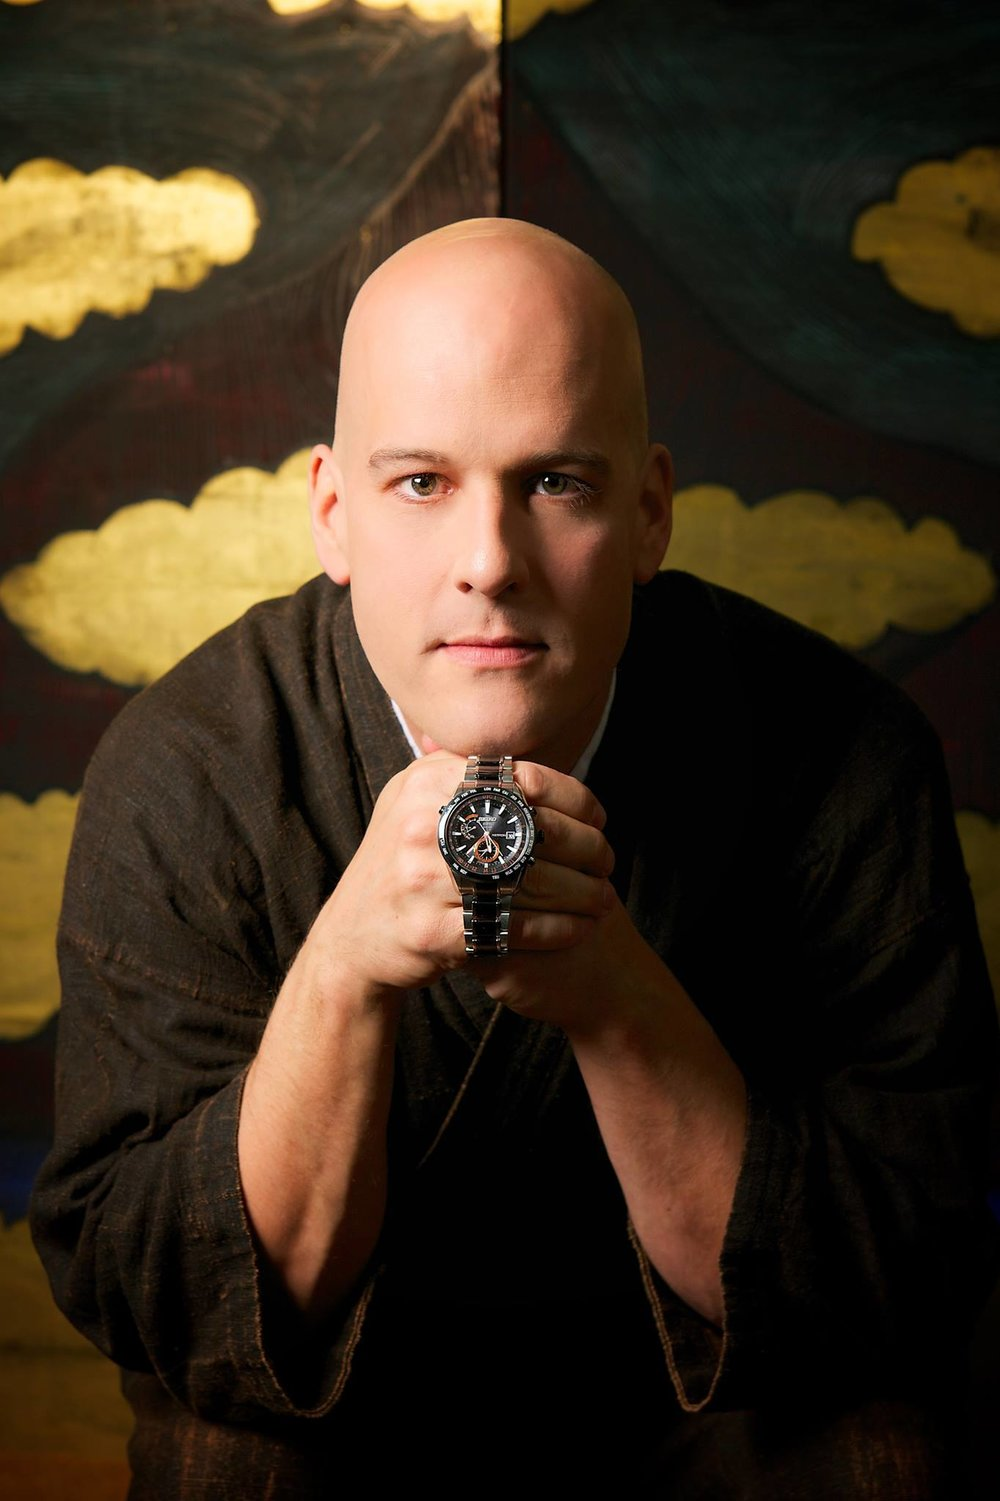 "David Stanley Hewett is proud to be named the GLOBAL SEIKO ASTRON AMBASSADOR for the Seiko Watch Company. Please click the link below to visit the Seiko Facebook page!  https://www.facebook.com/Seiko.Japan   David Hewett is one of the best-known foreign artists in Japan. Hewett creates Japanese Traditional Screens and pottery as well as designing Obis and Yukatas. Hewett has made it his goal to introduce Japanese craftsmanship to the world.  Hewett says: ""The Japanese attention to detail and focus on excellence in traditional arts such as pottery and painting to high-tech design as with the Seiko Astron is what brought me to Japan to study 19 years ago and what will keep me here forever.  I am thrilled to be a Seiko Ambassador and share with the world, Seiko's excellence in design and craftsmanship."""